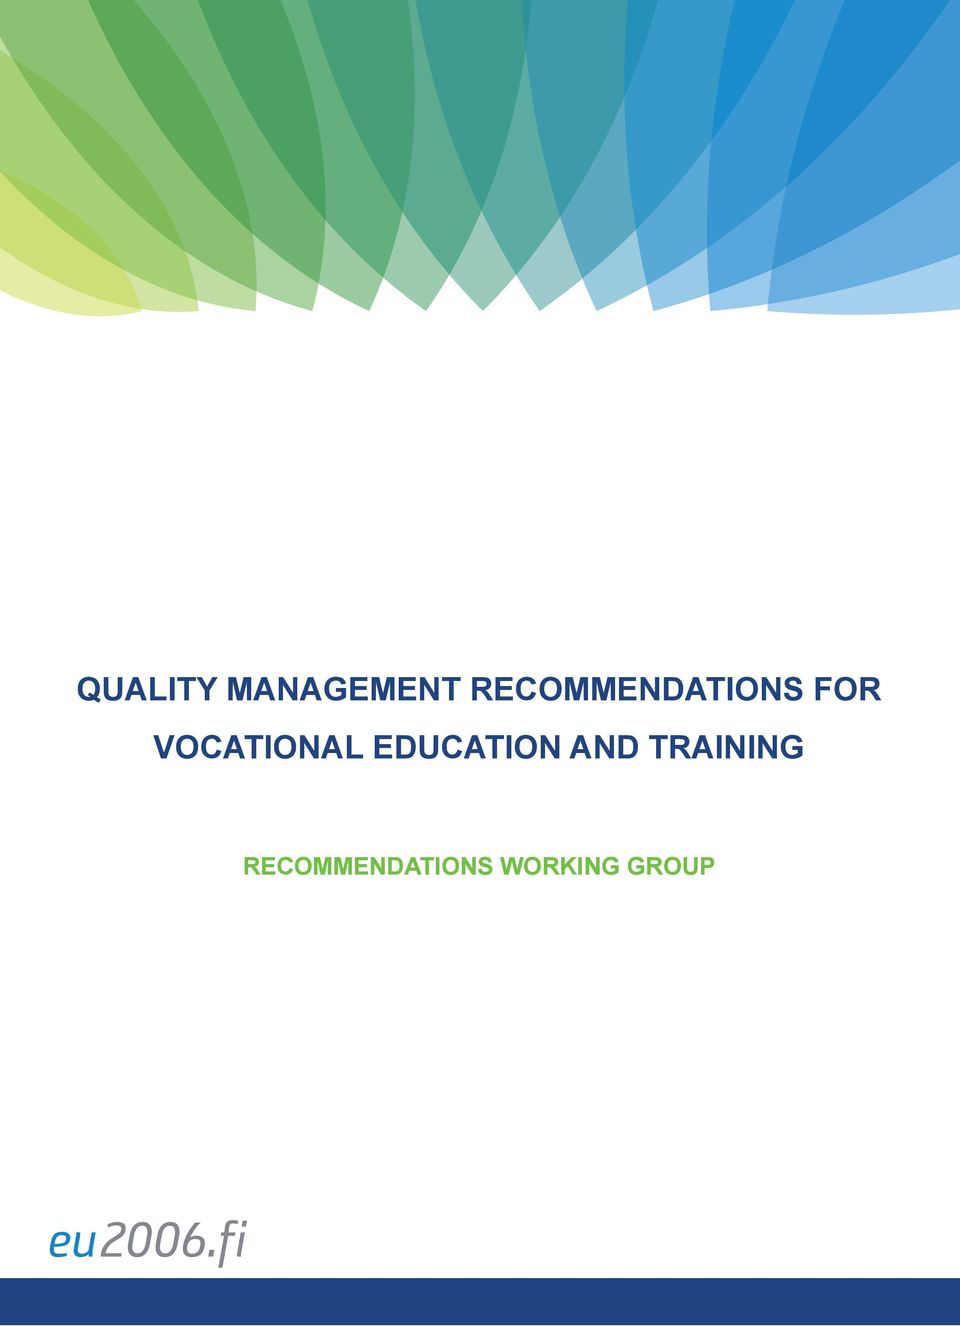 VOCATIONAL EDUCATION AND